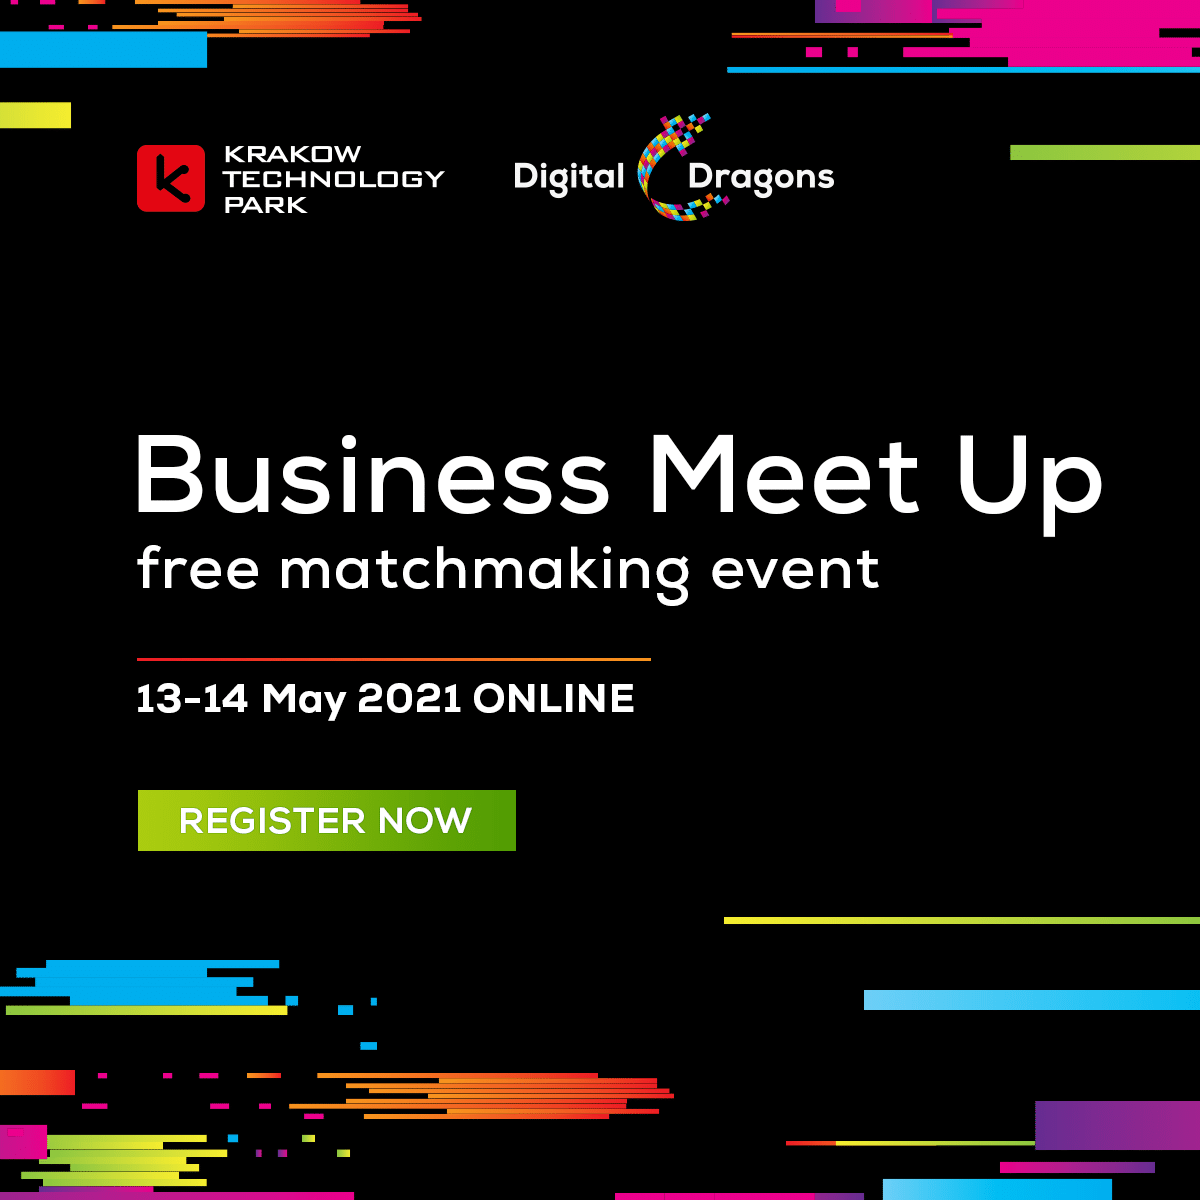 Digital Dragons Business Meet Up